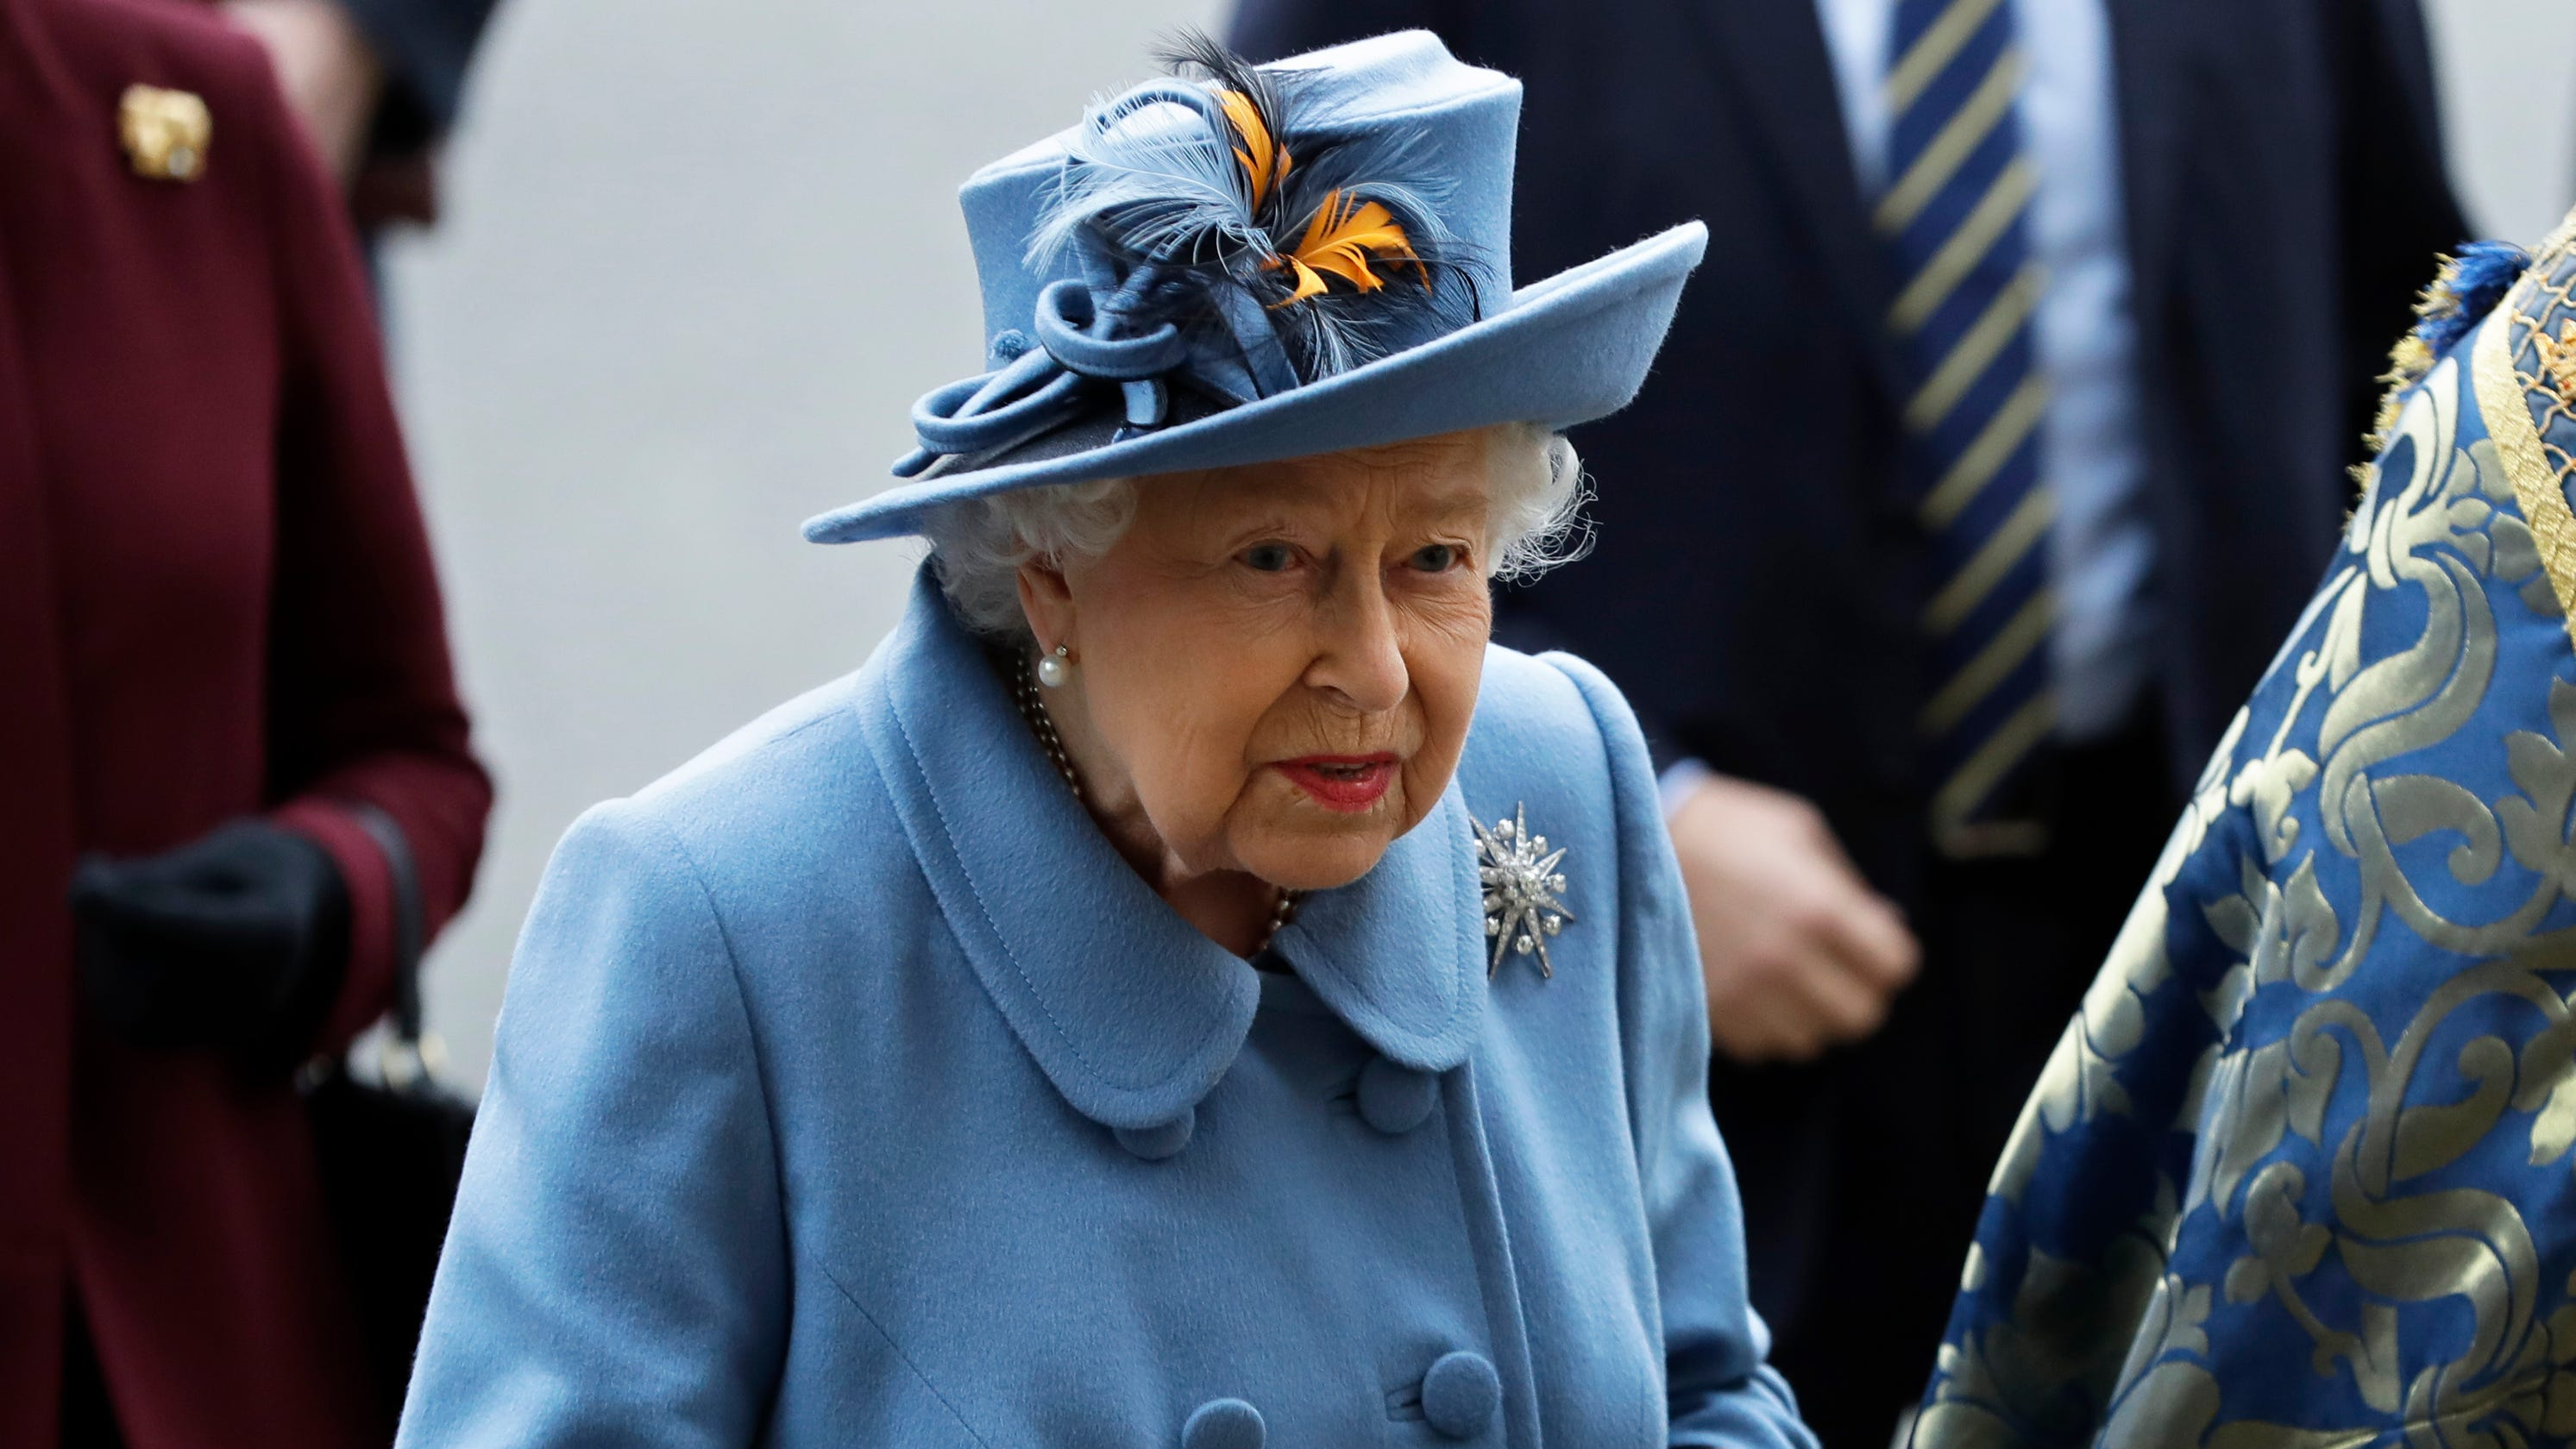 Queen Elizabeth reflects on coronavirus, addresses 'great concern and uncertainty' thumbnail